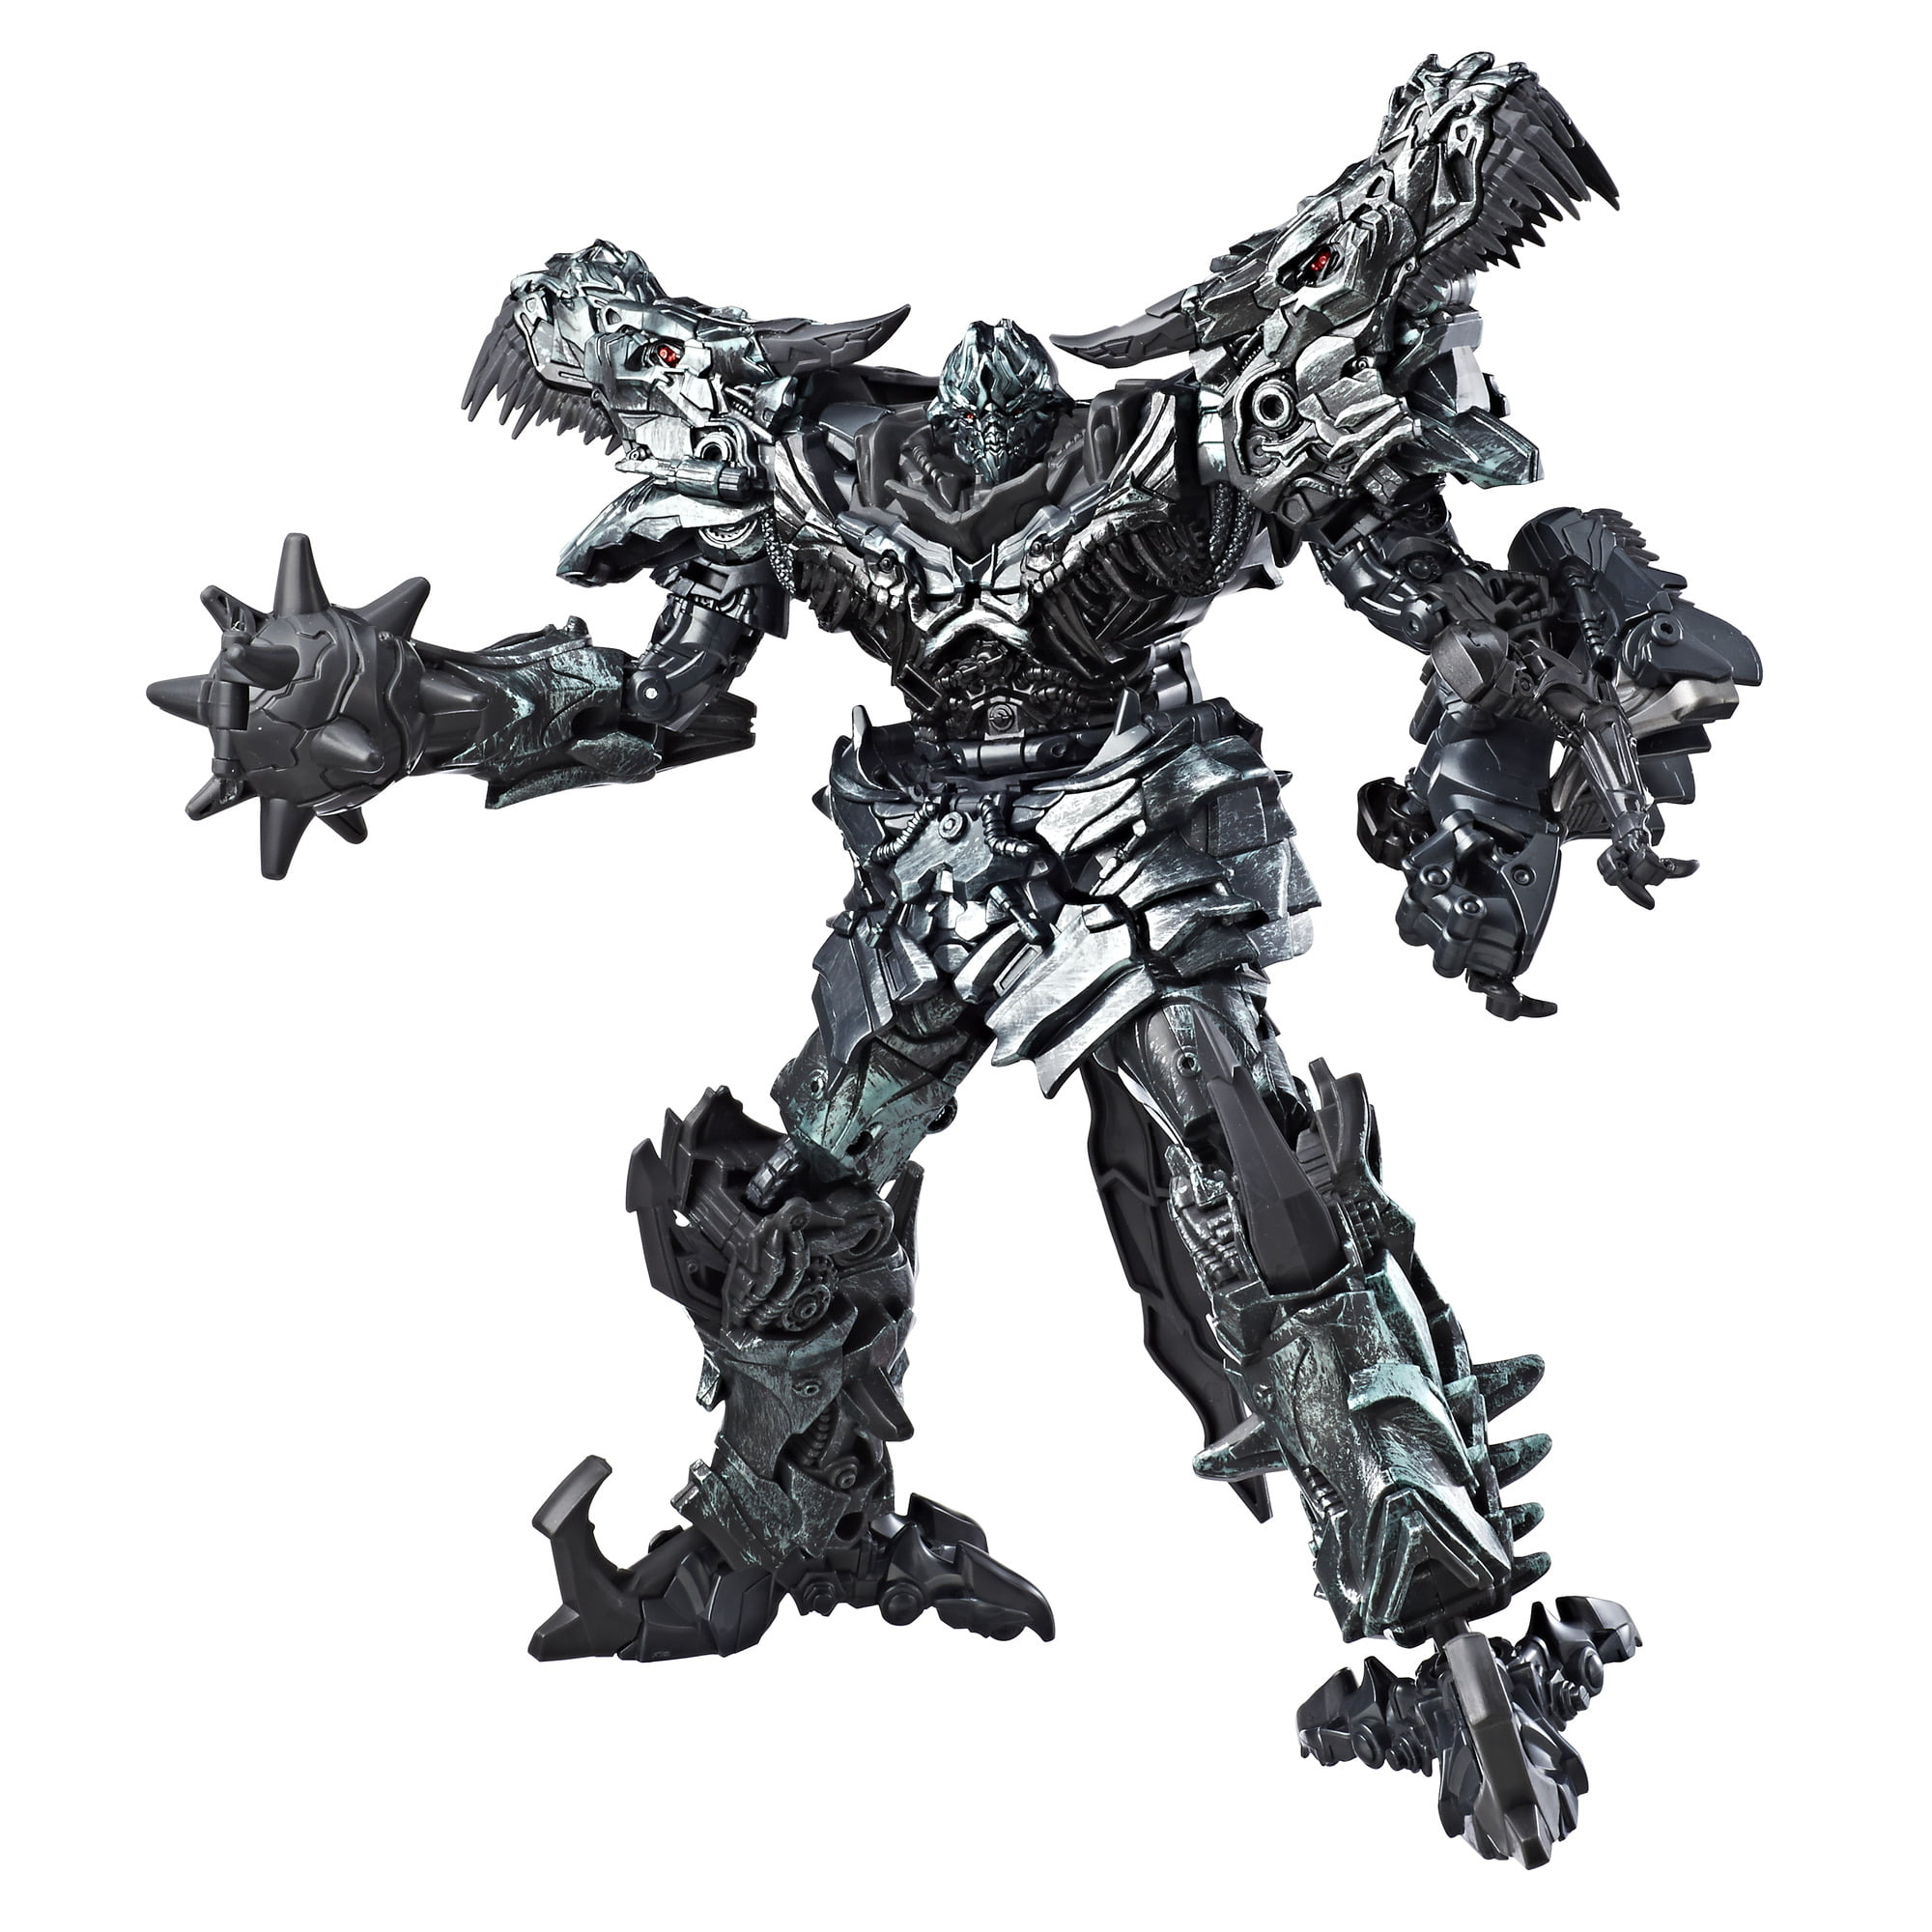 Transformers Studio Series 07 Leader Class Movie 4 Grimlock by Hasbro, Inc